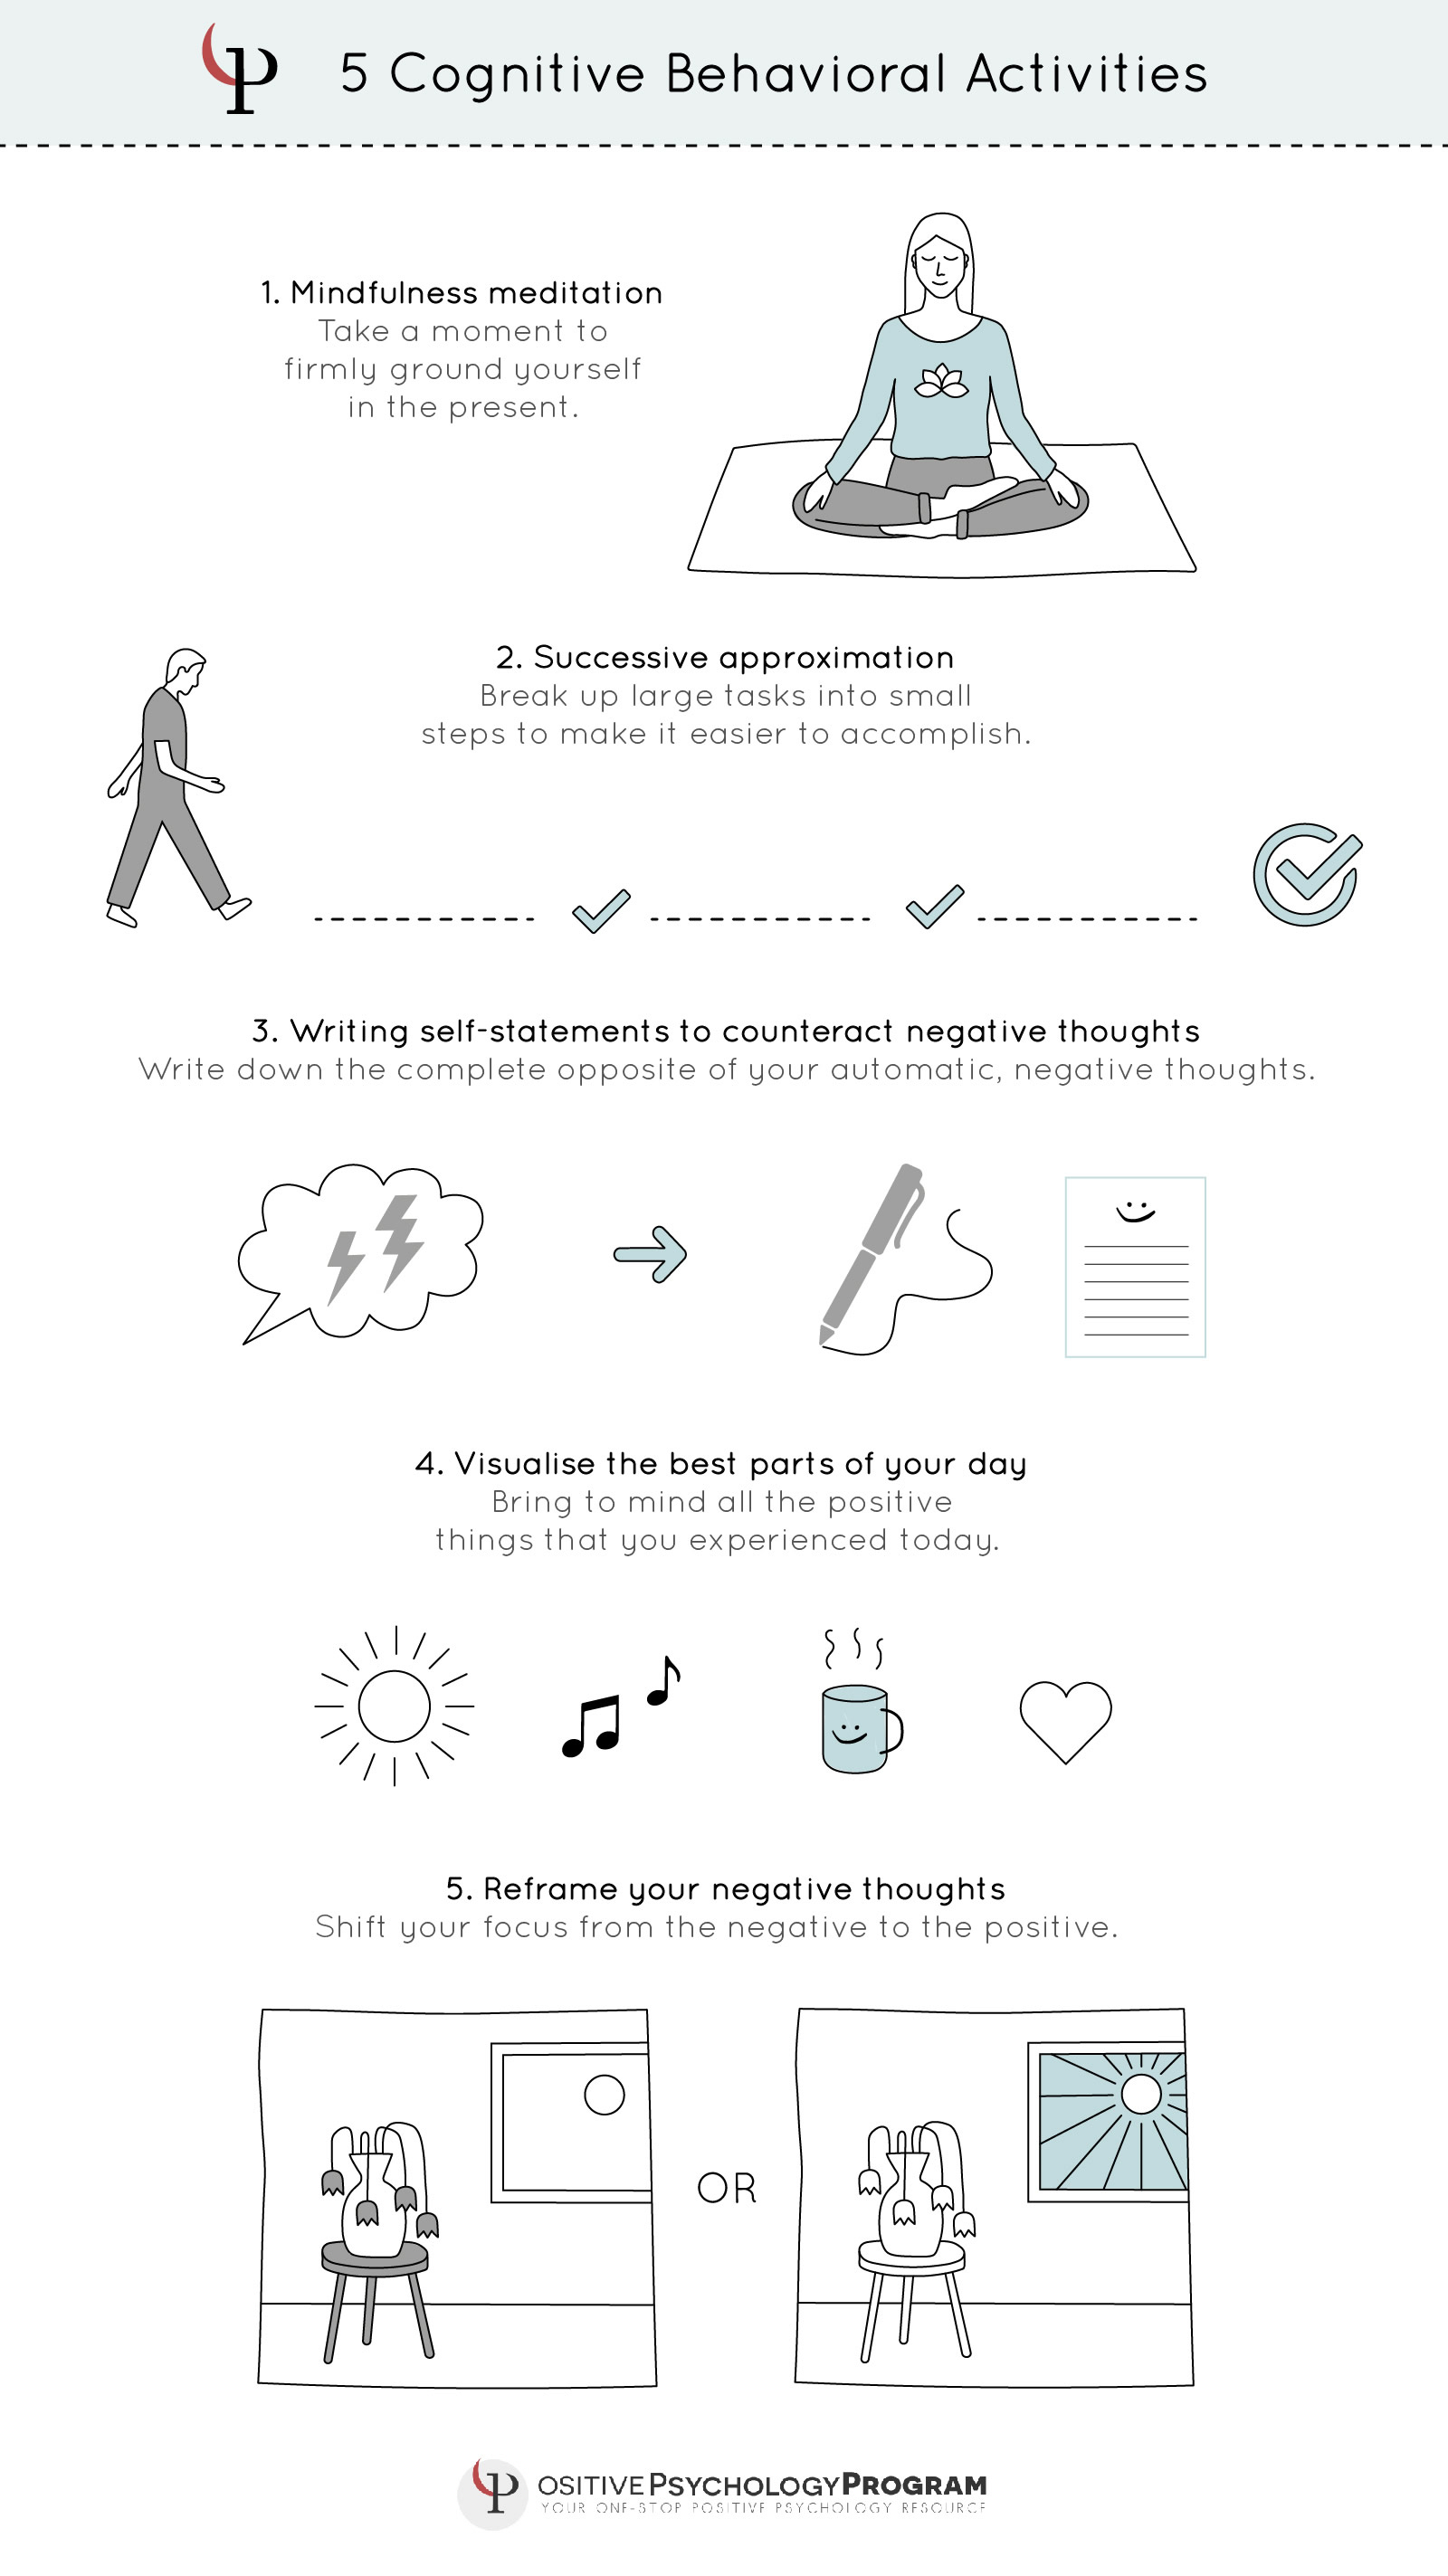 25 Cbt Techniques And Worksheets For Cognitive Behavioral Therapy | Cbt Printable Worksheets